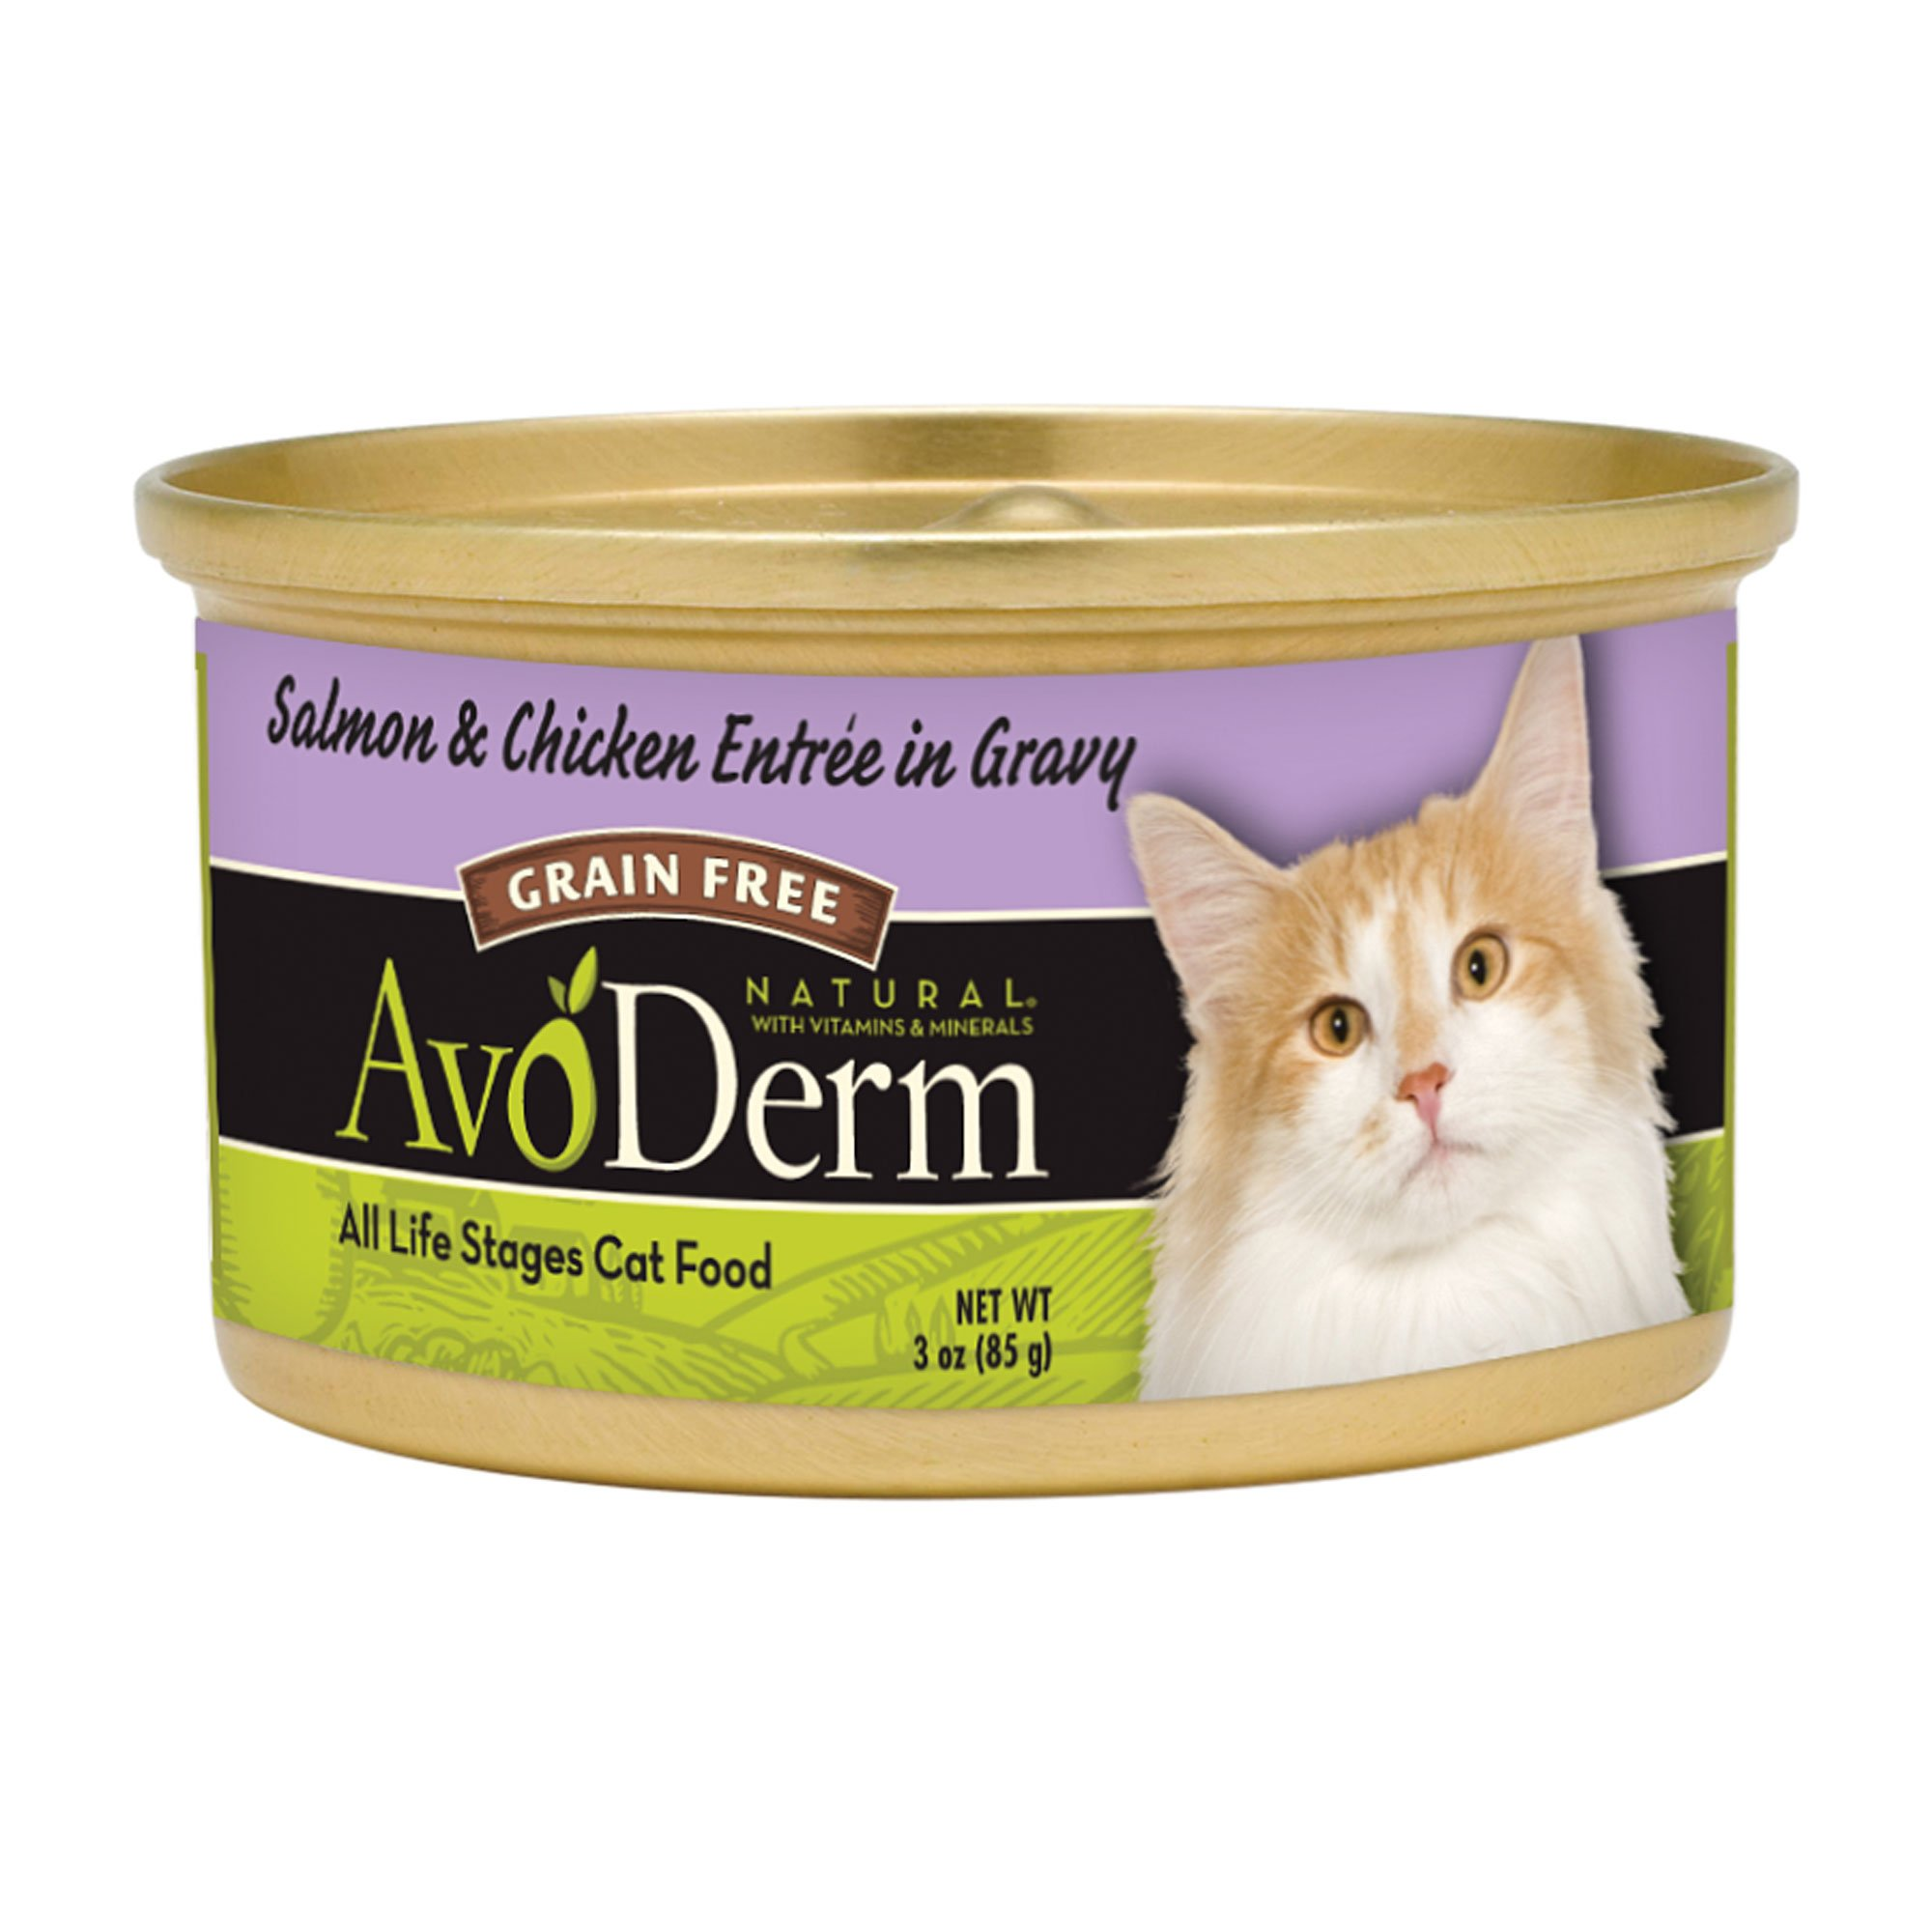 AvoDerm Salmon & Chicken Entr?in Gravy Canned Cat Food